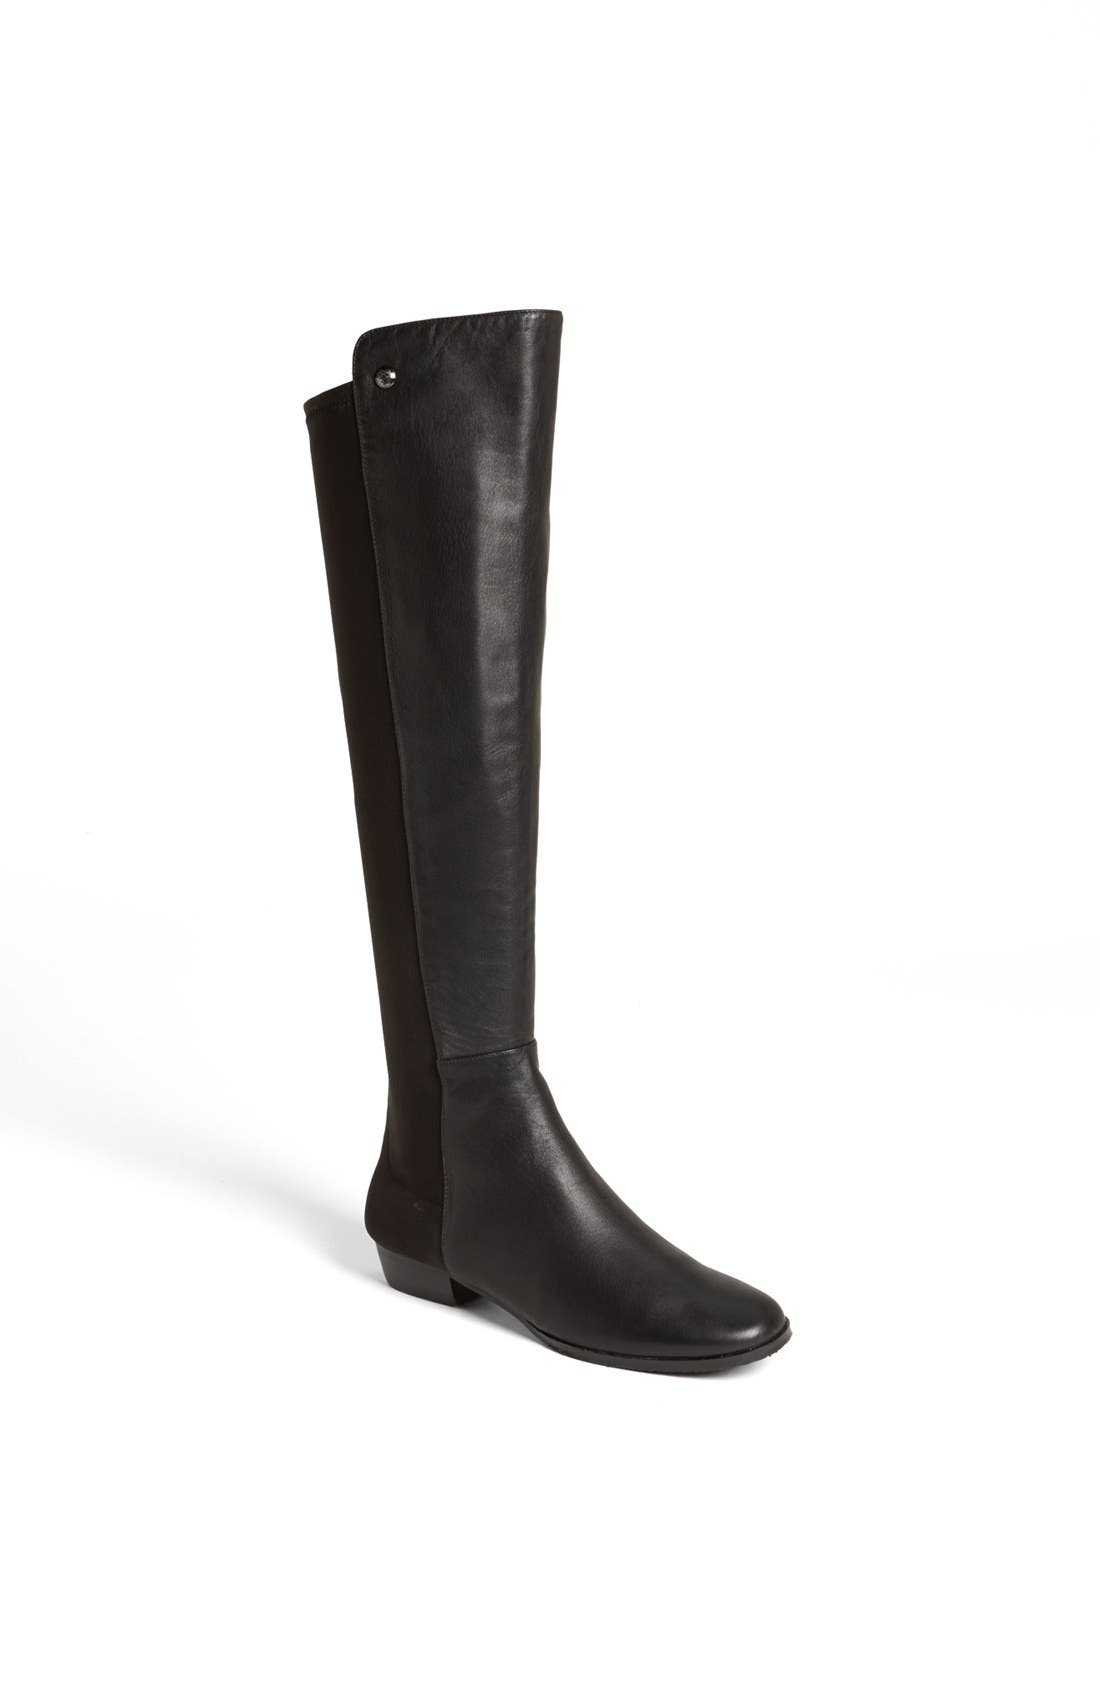 Main Image - Vince Camuto 'Karita' Over the Knee Boot (Women)